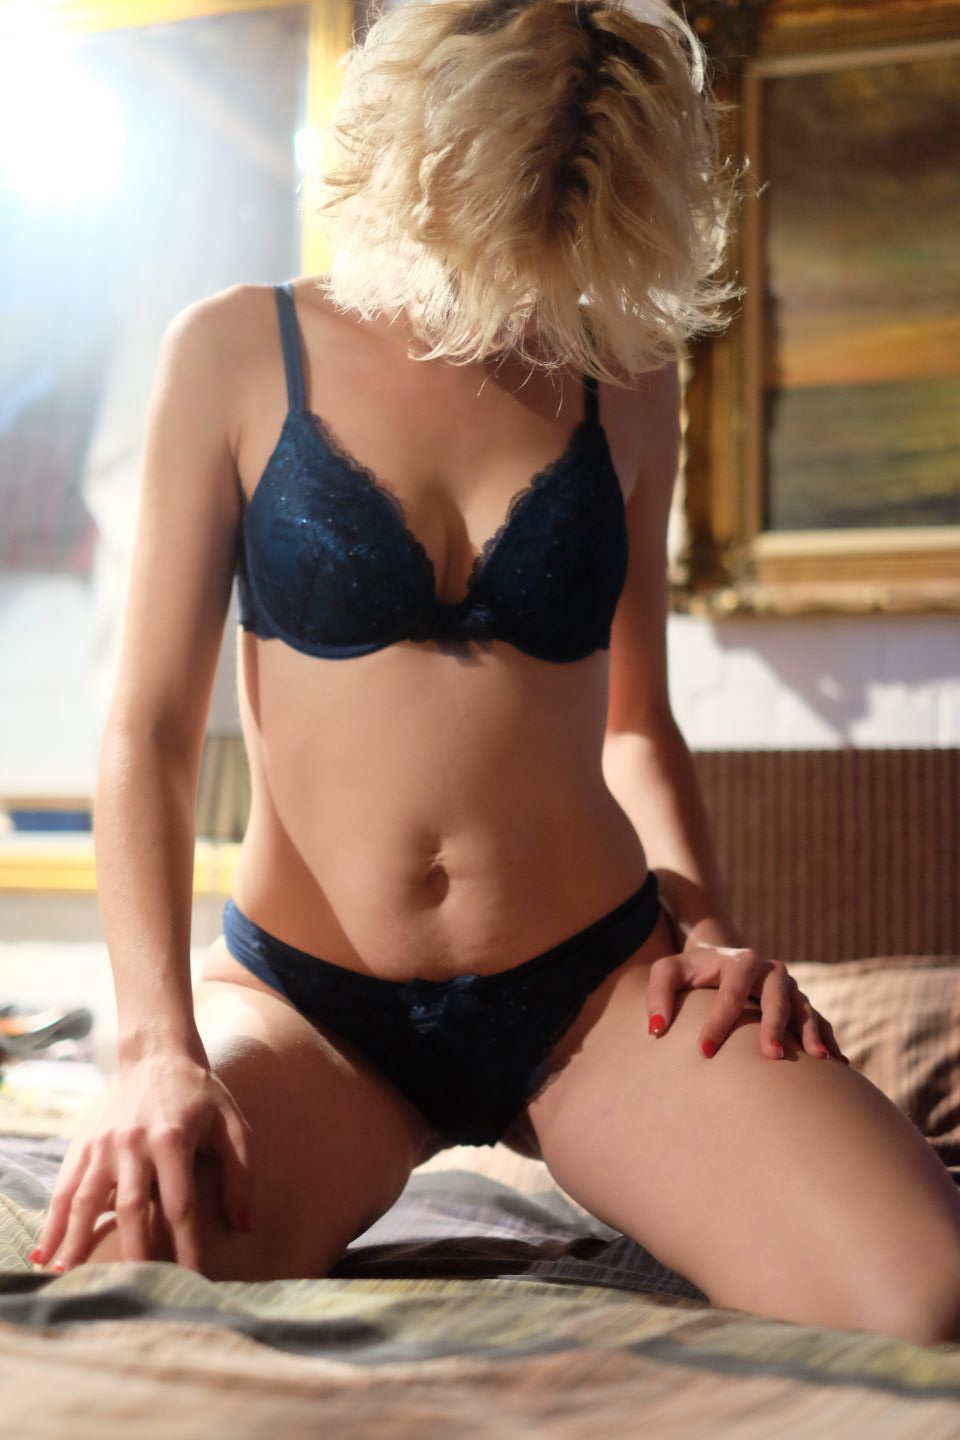 sex massage for girls escorte i kristiansand